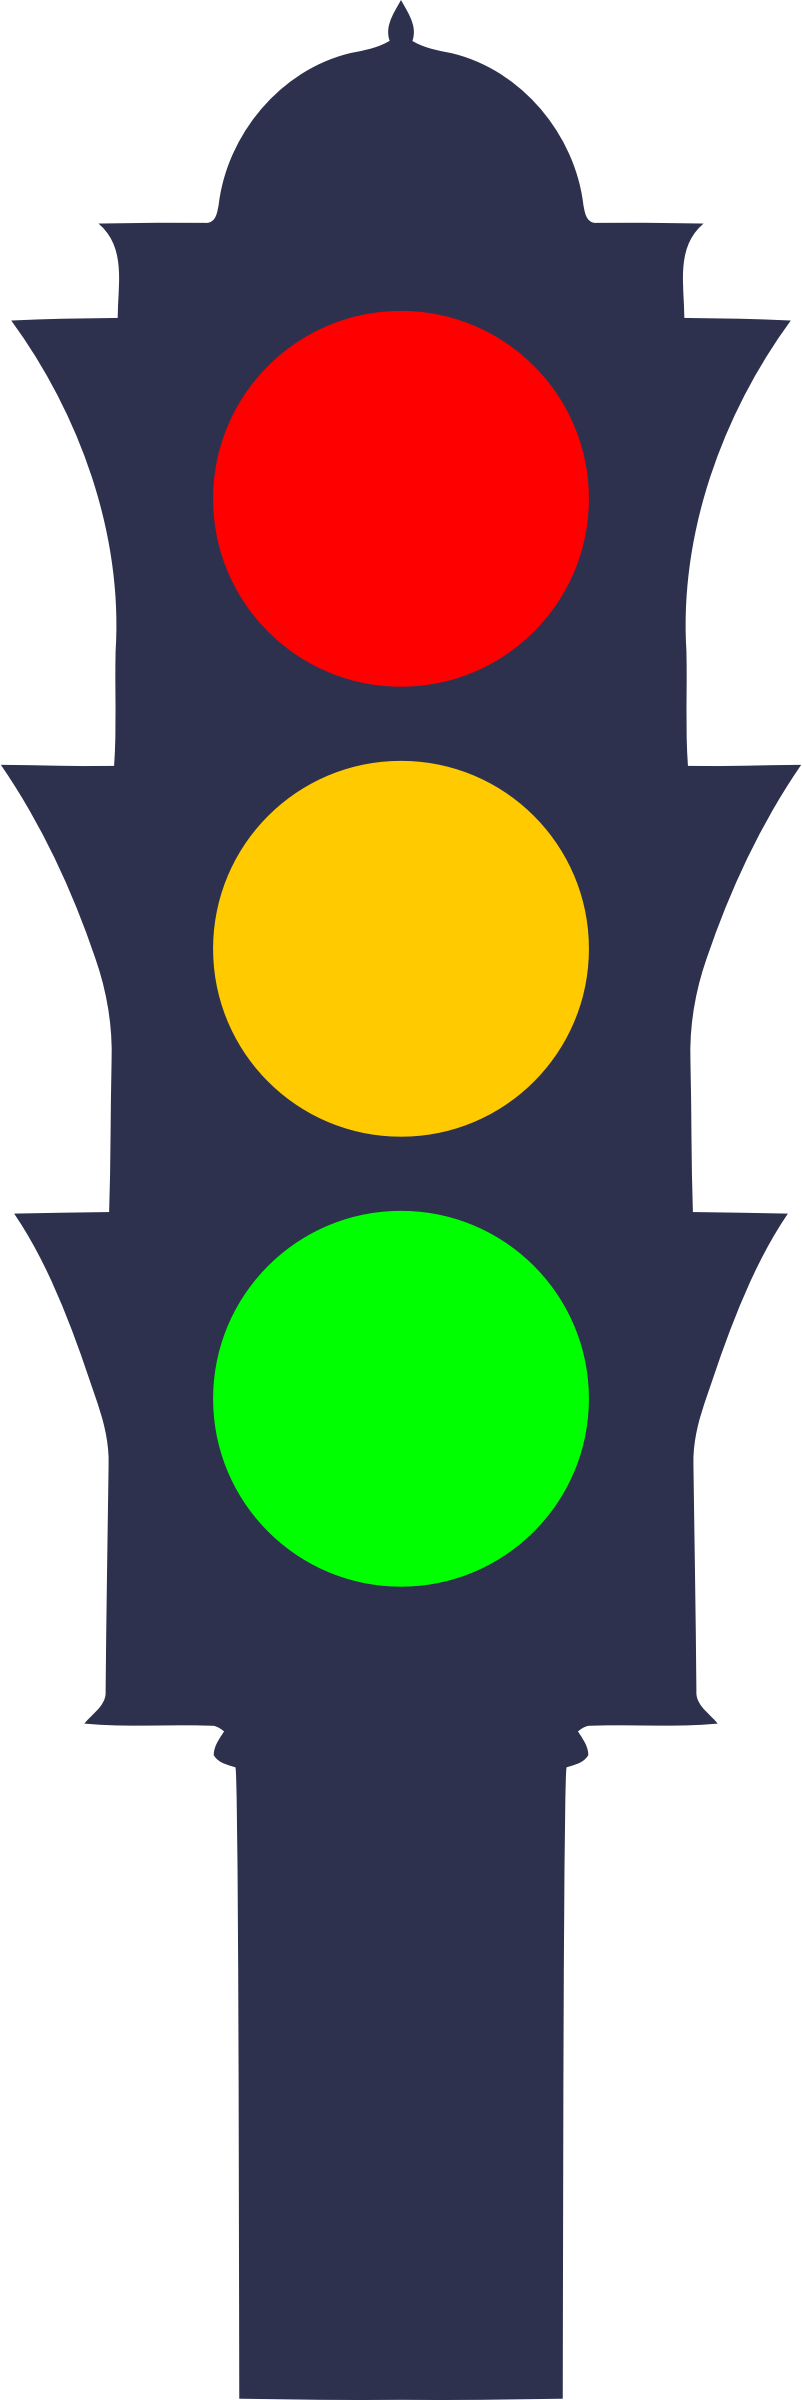 Traffic light by Firkin